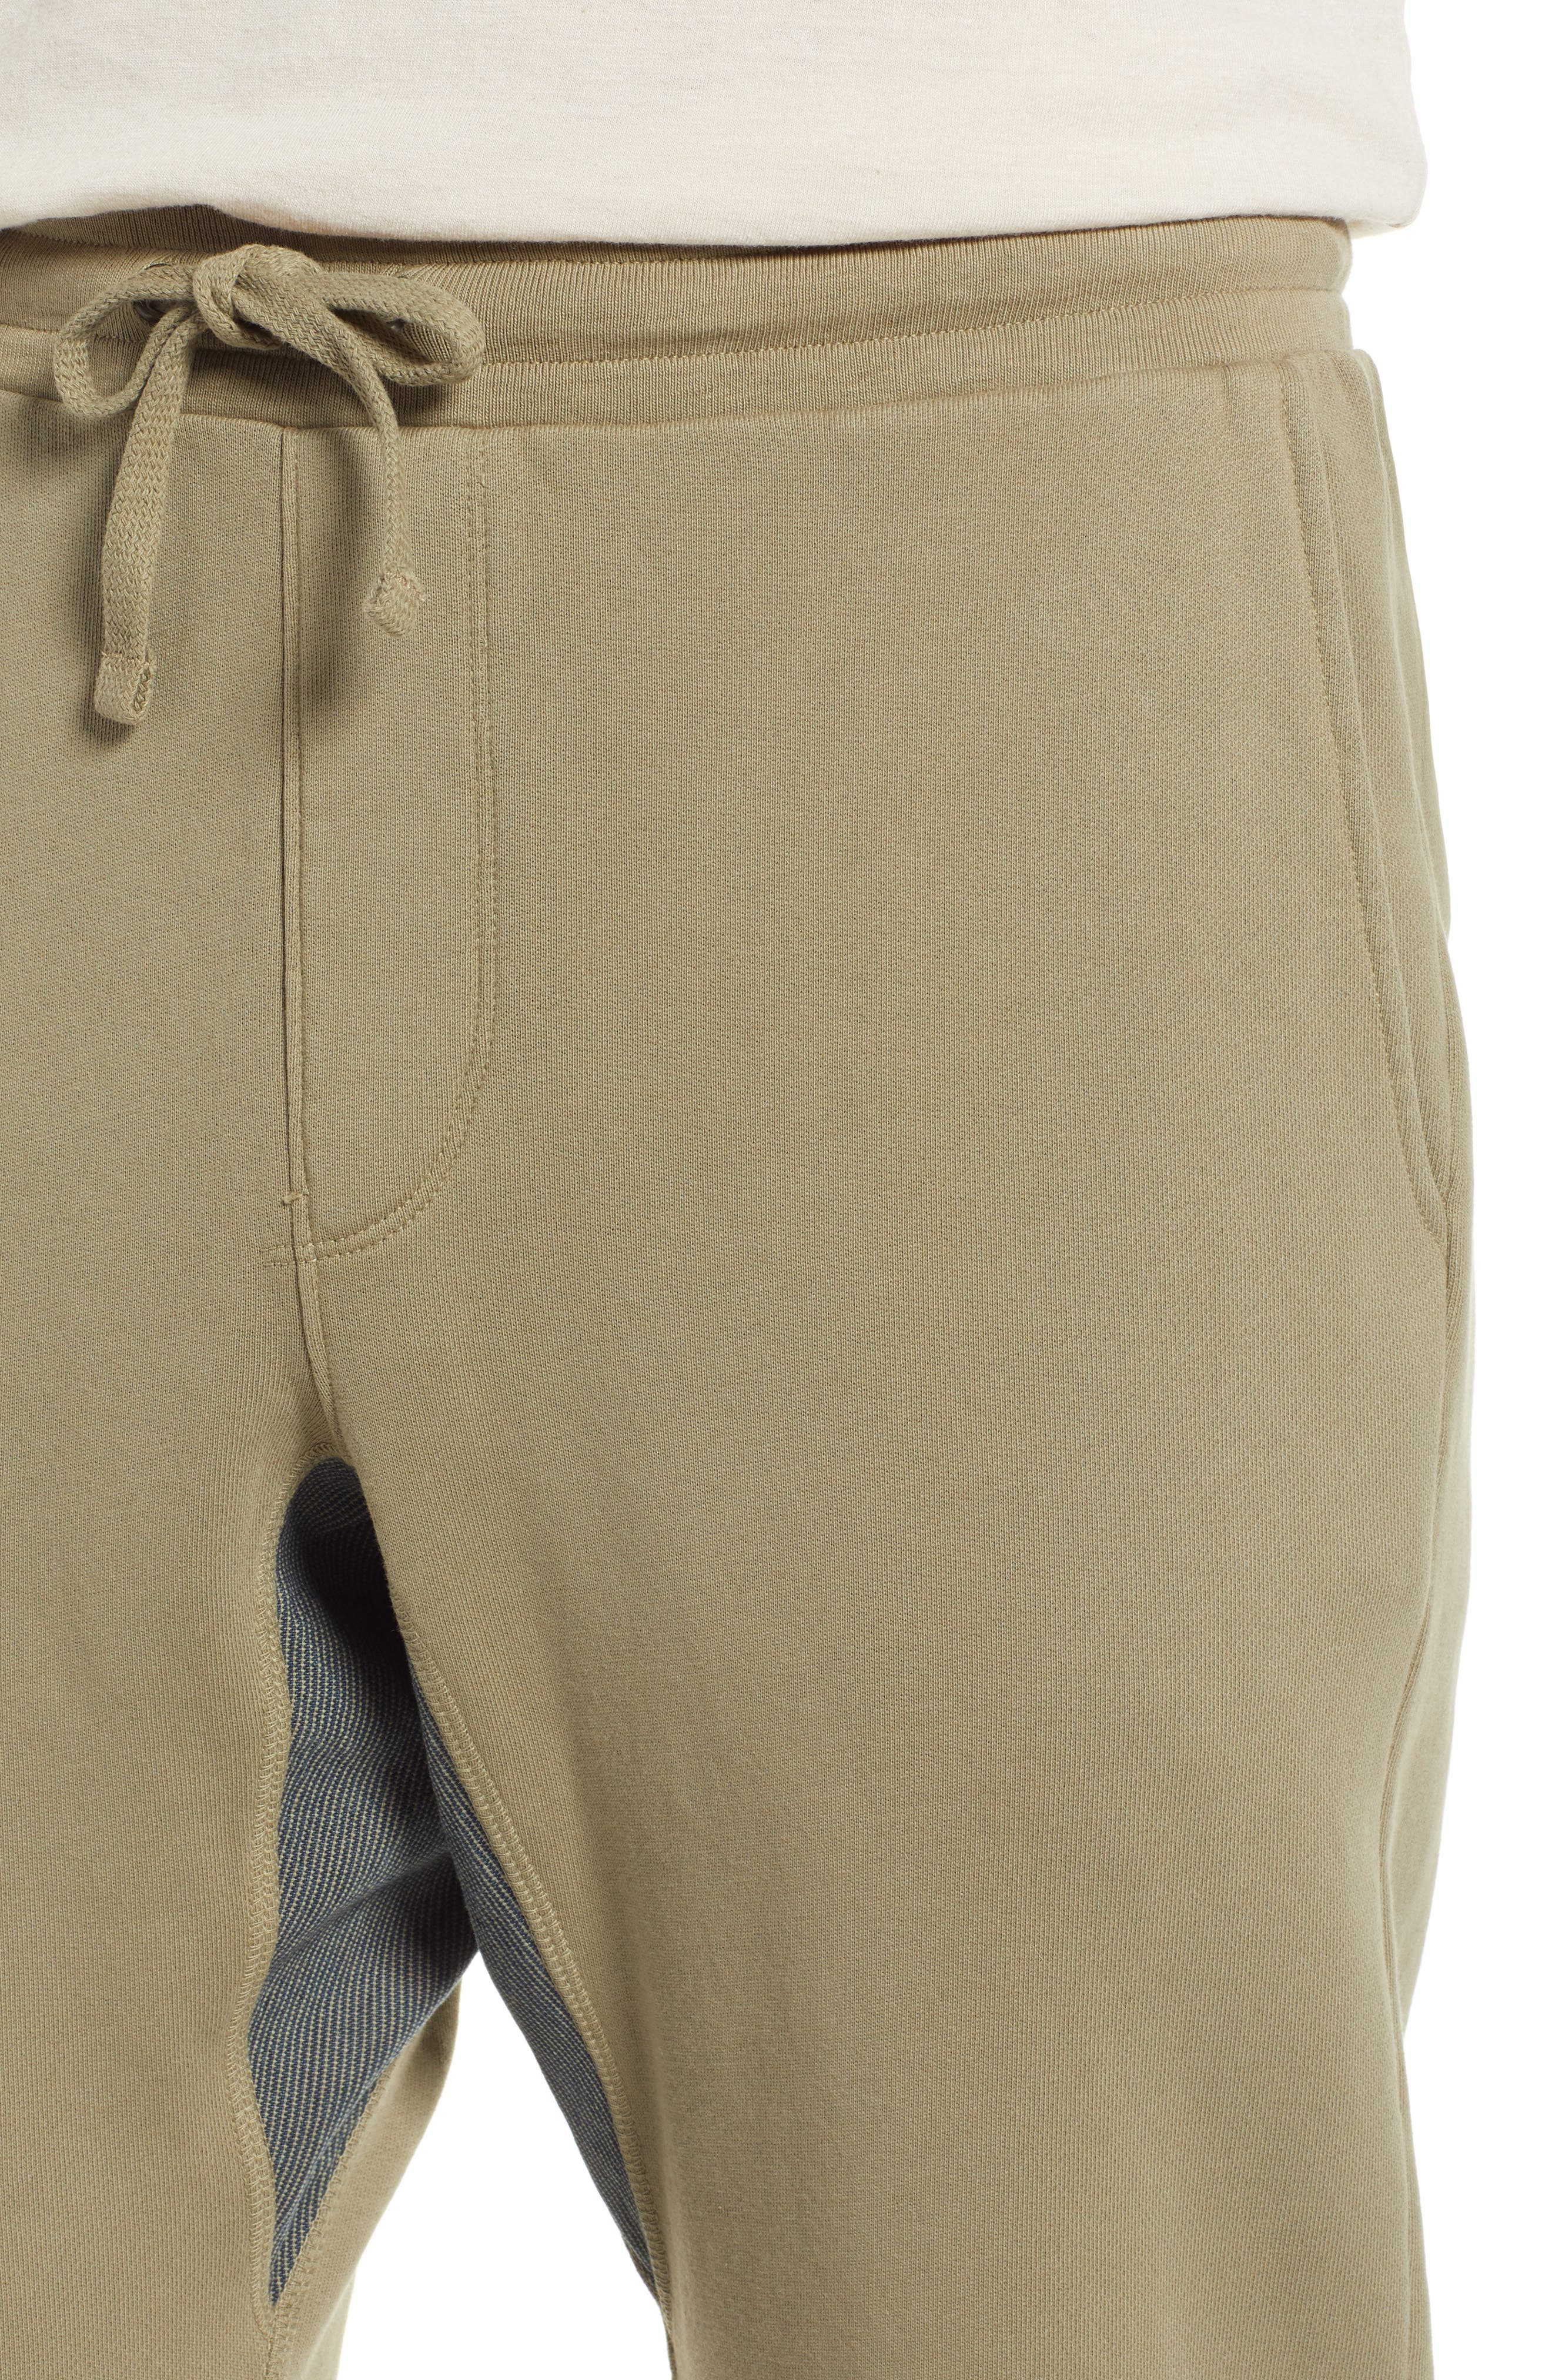 x 3x1 Drawstring Waist French Terry Sweatpants,                             Alternate thumbnail 4, color,                             LIGHT OLIVE